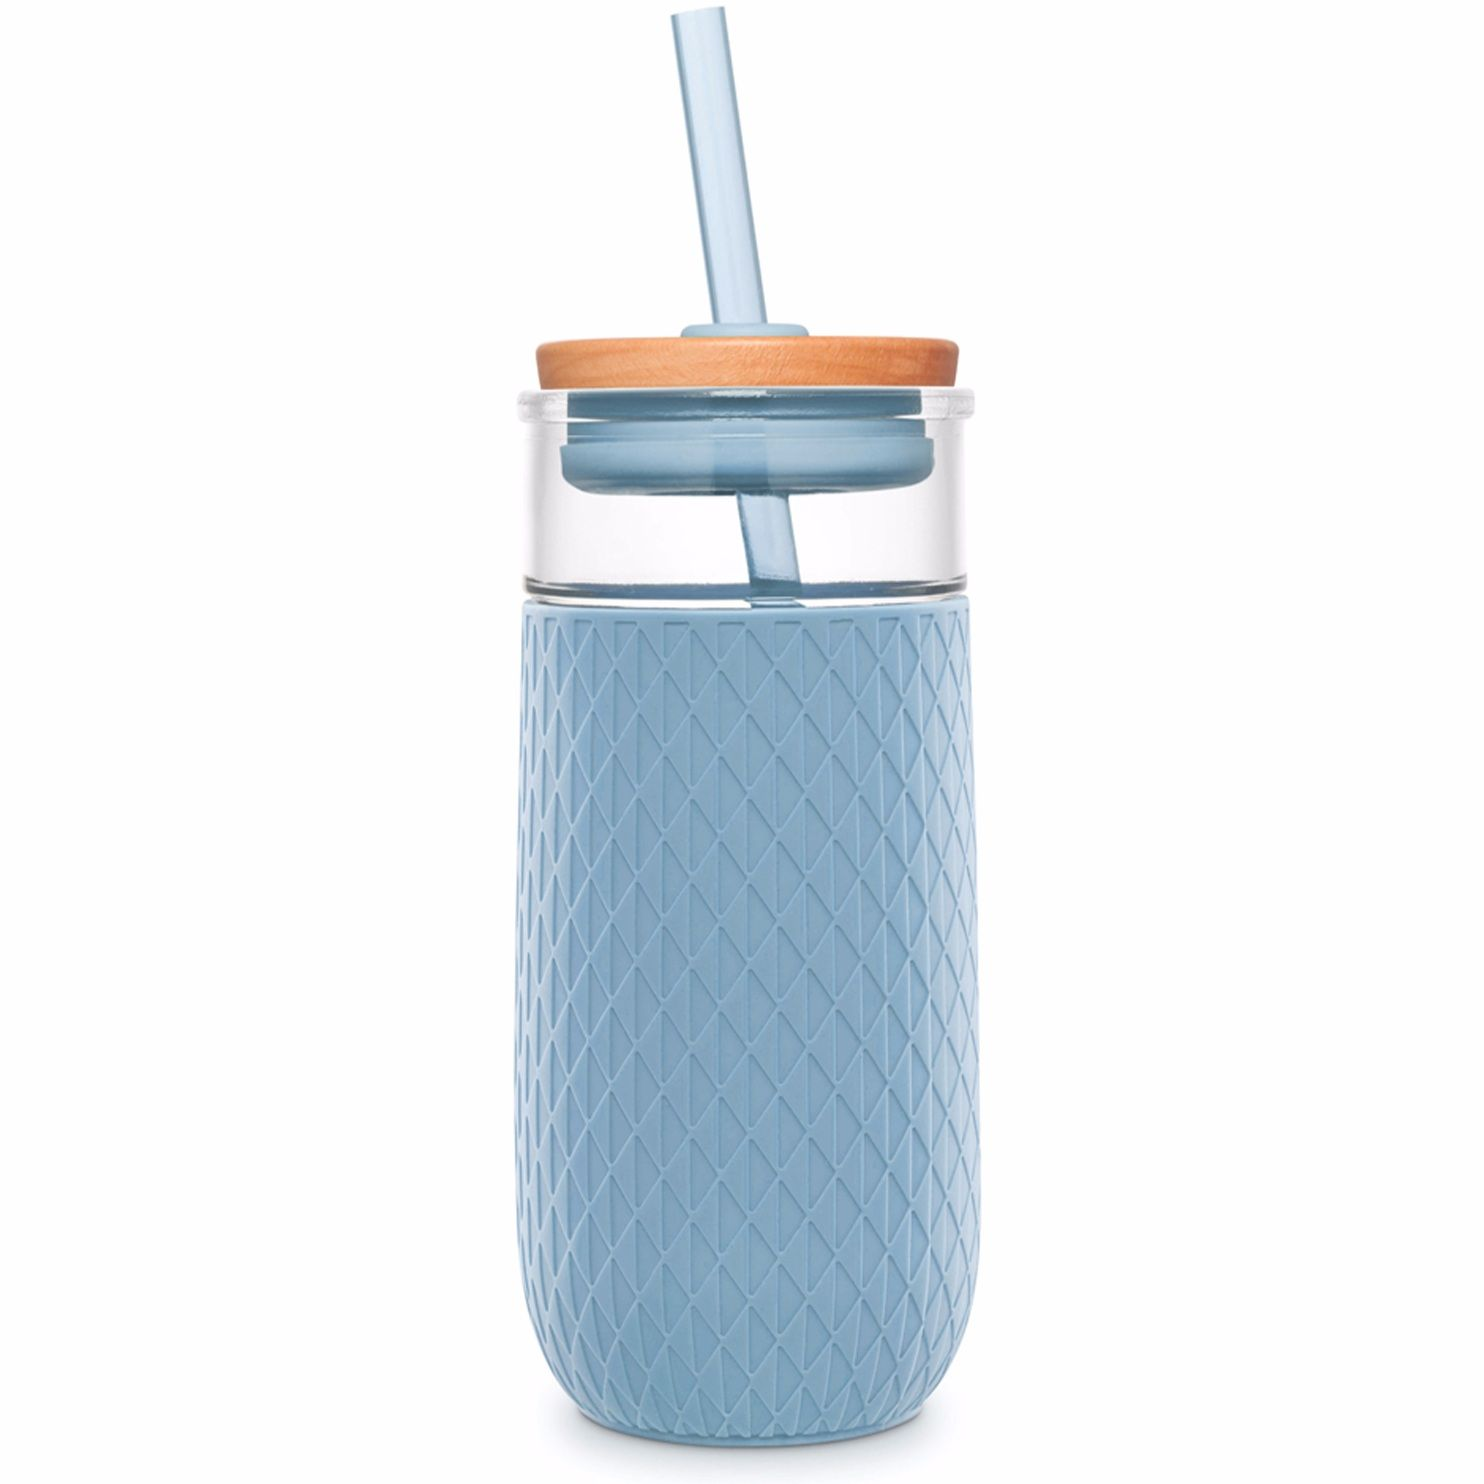 Ello Products Devon 18oz Glass Tumbler With Straw Tumbler With Straw Glass Tumbler Trendy Water Bottles